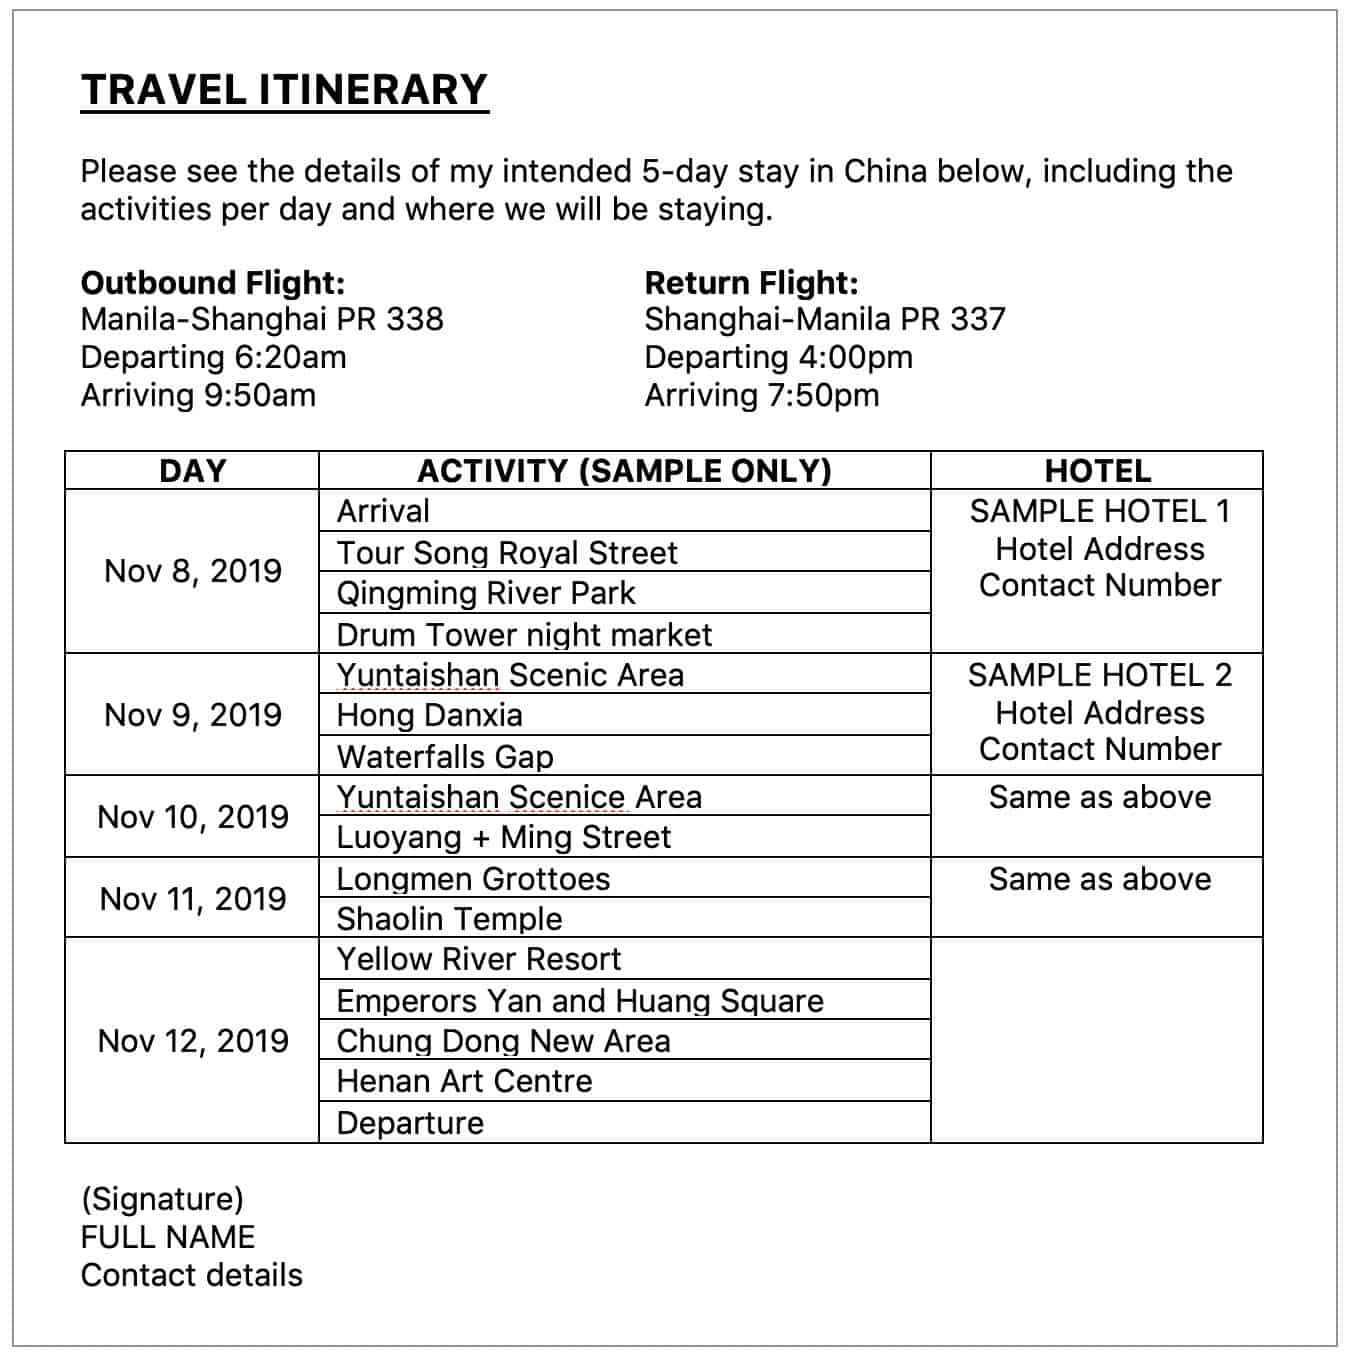 China Visa Requirements Application Process 2020 The Poor Traveler Itinerary Blog